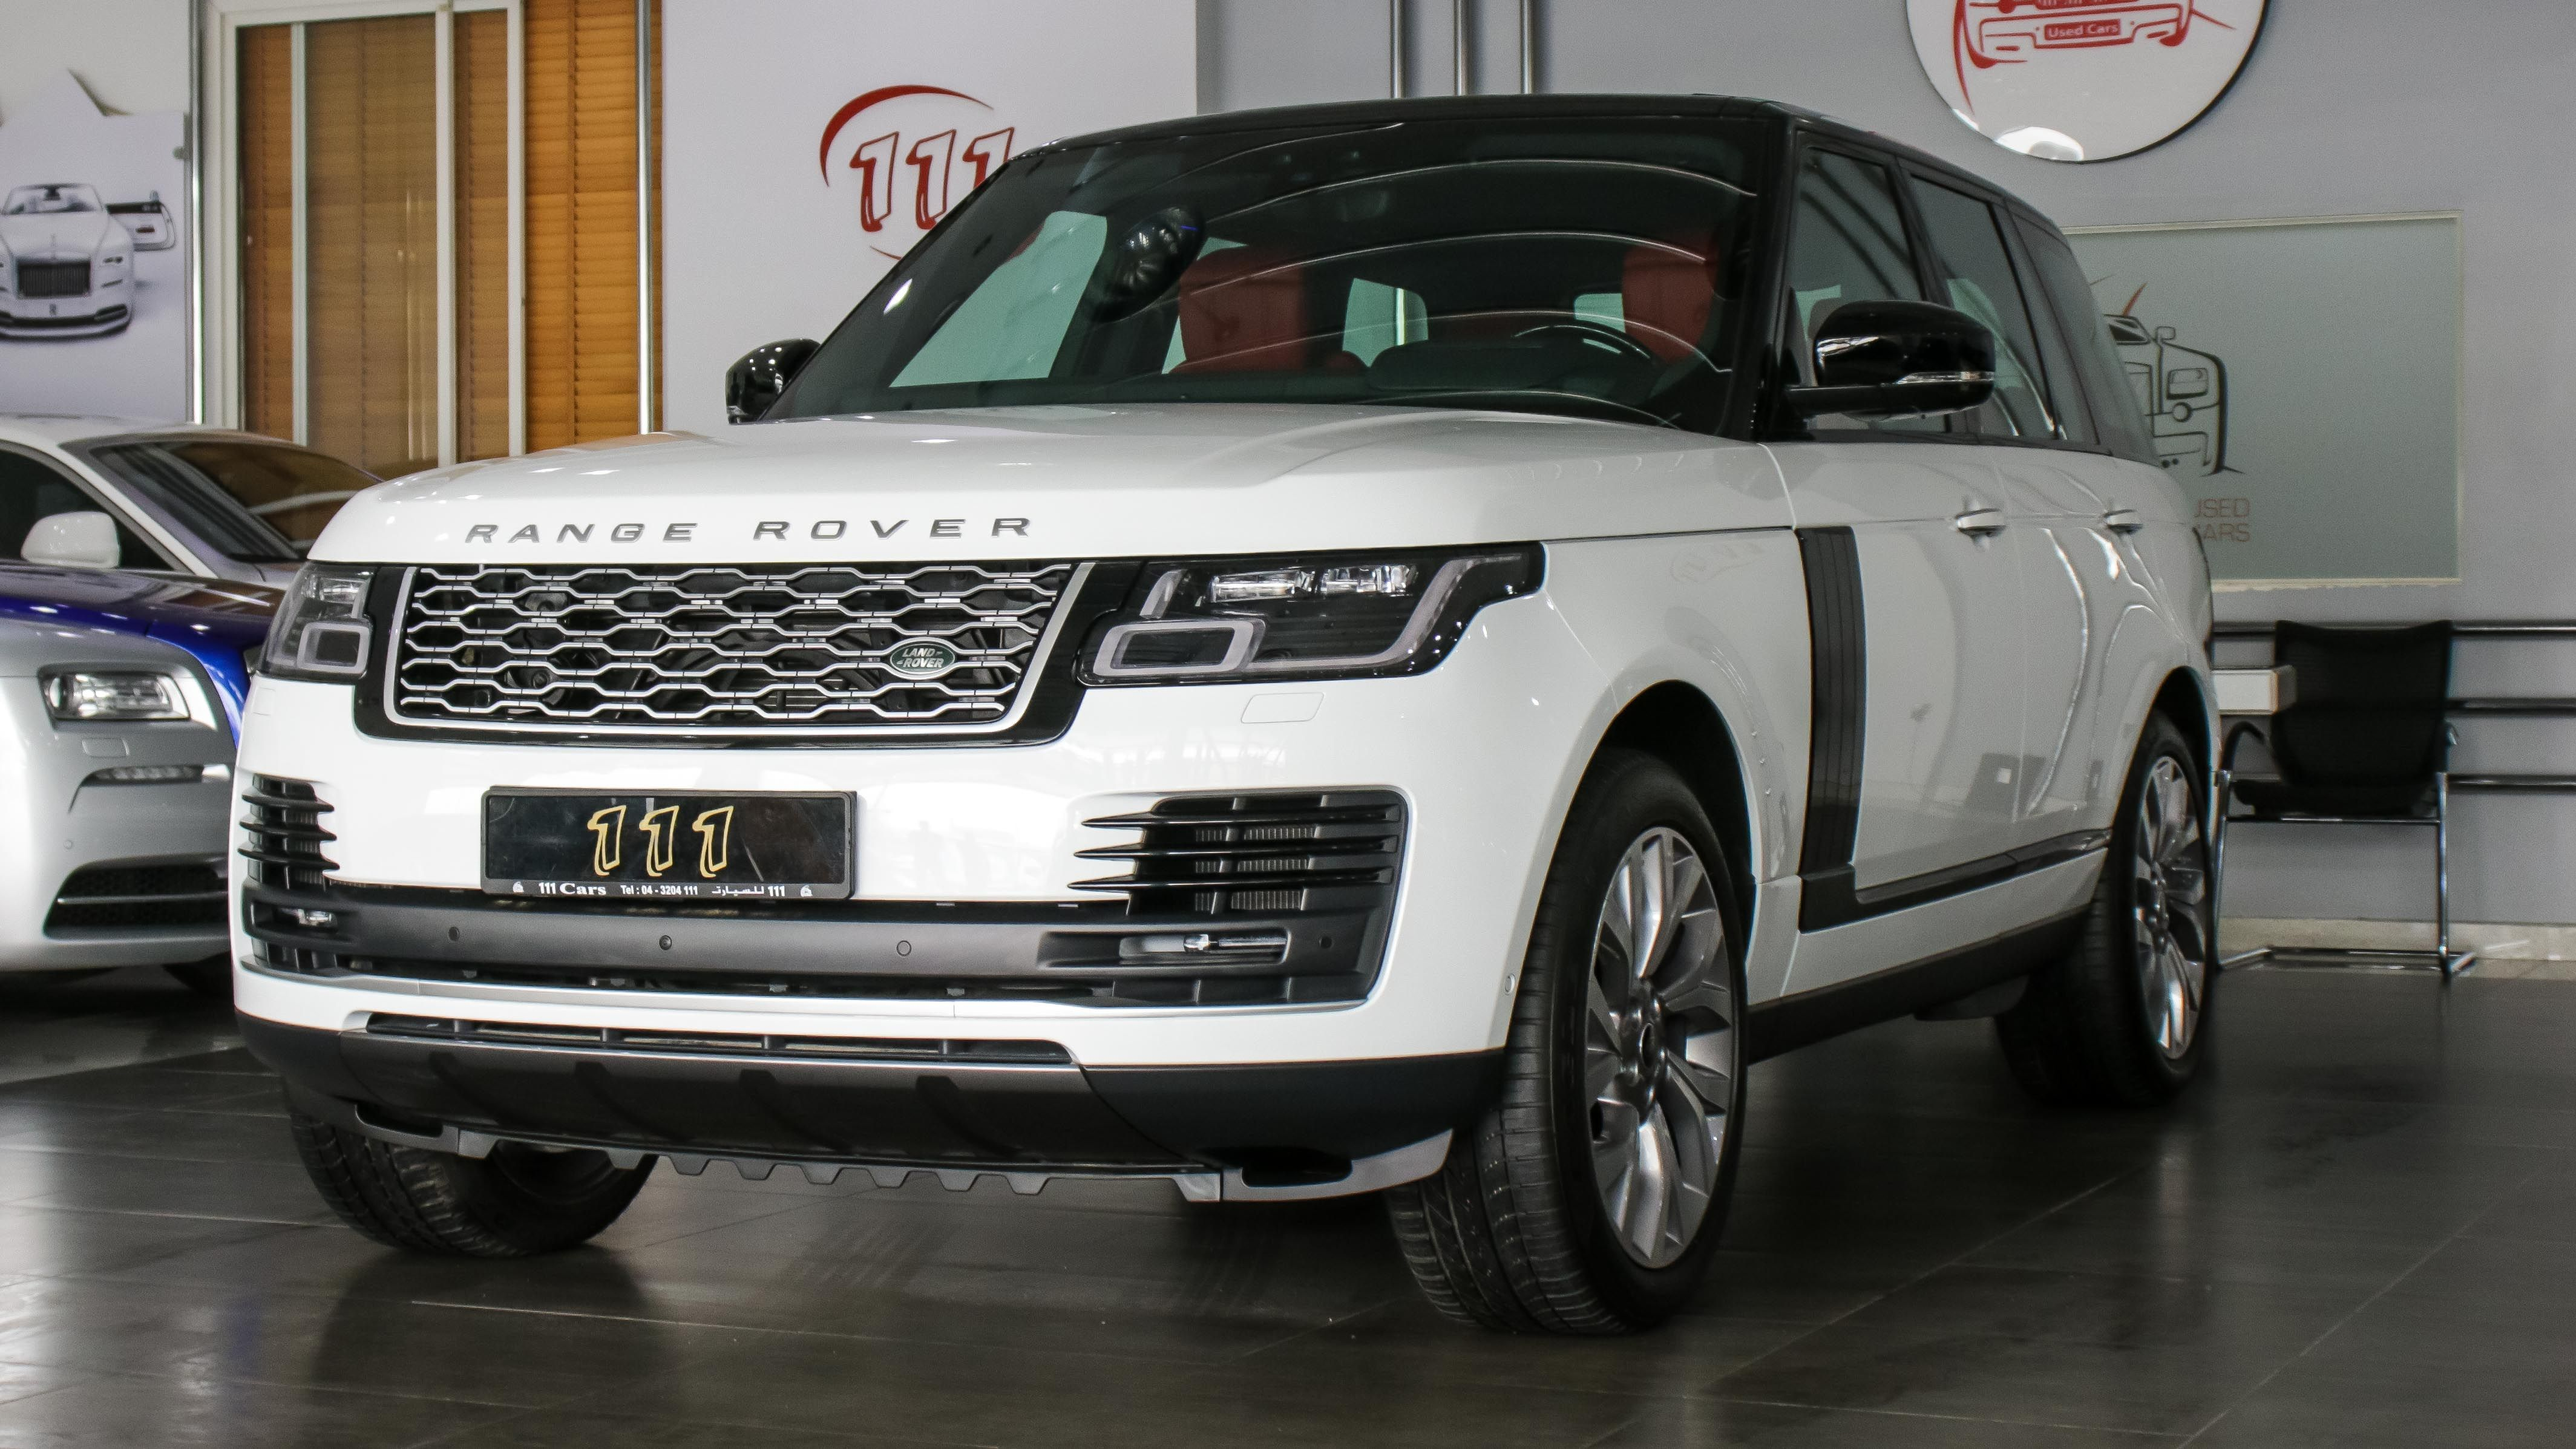 Model Range Rover Vogue Se Supercharged Gcc Specs 5 Year